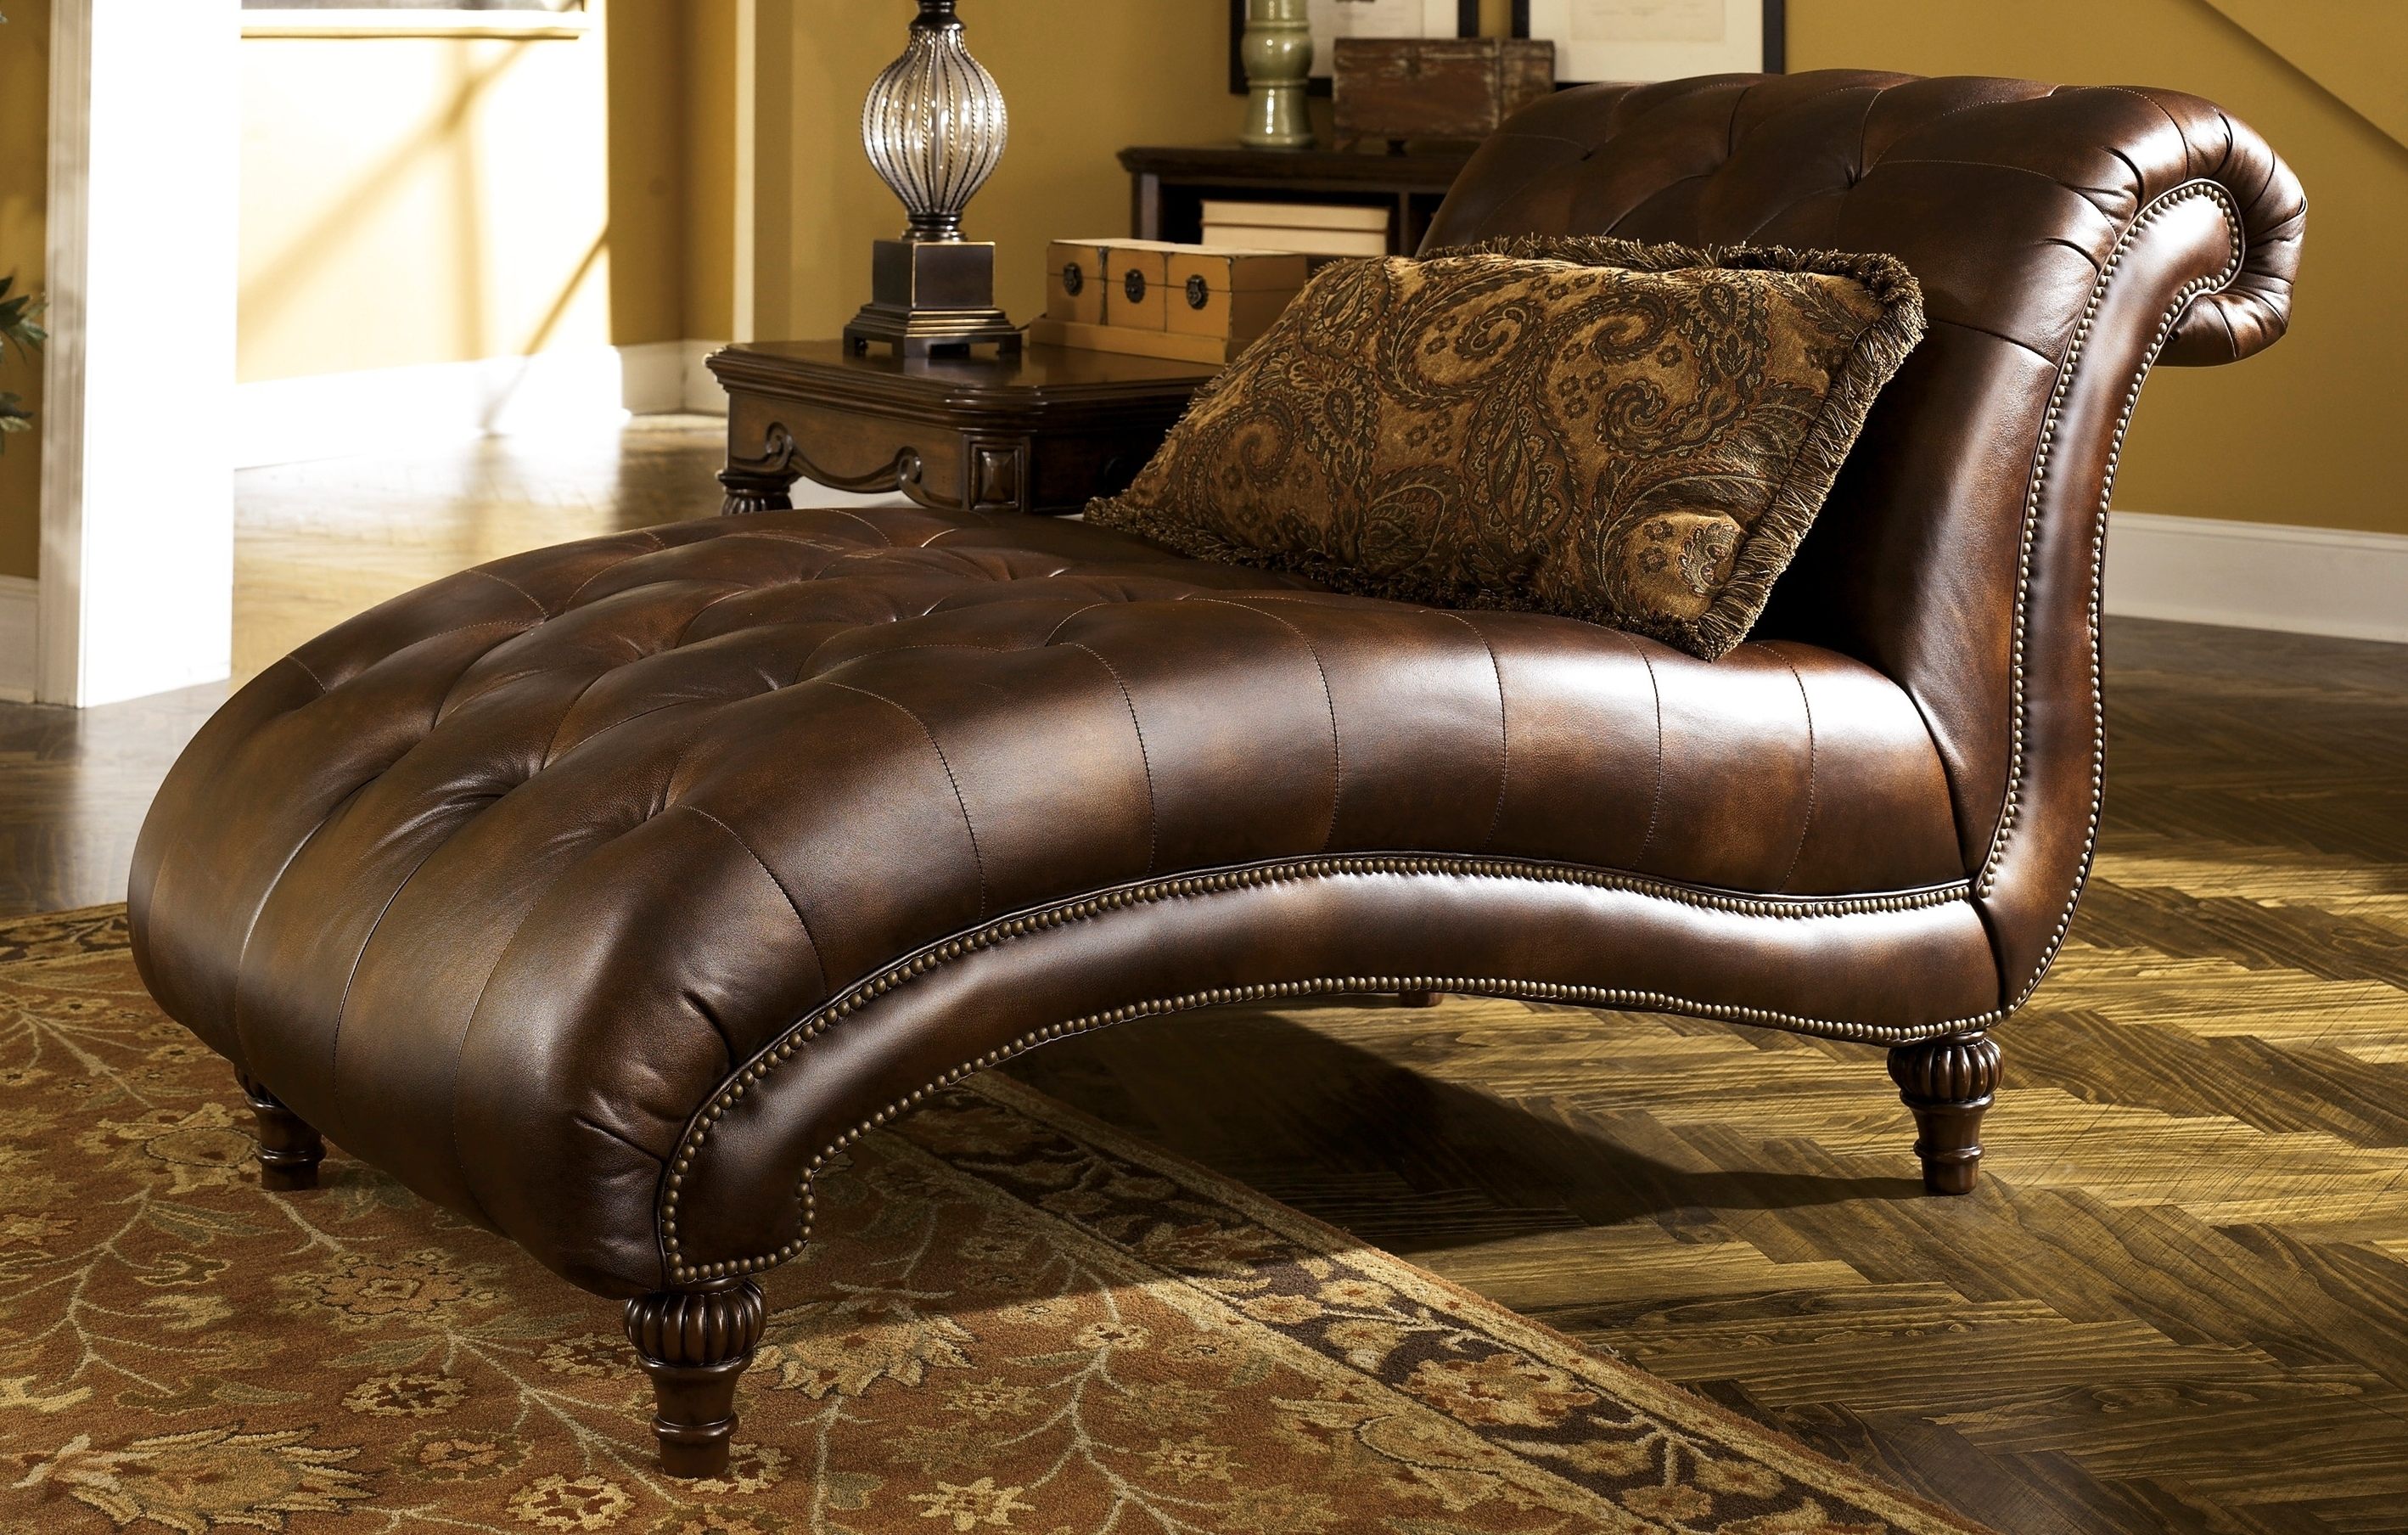 Buy Ashley Furniture 8430315 Claremore Antique Chaise With Recent Ashley Furniture Chaise Lounge Chairs (View 10 of 15)